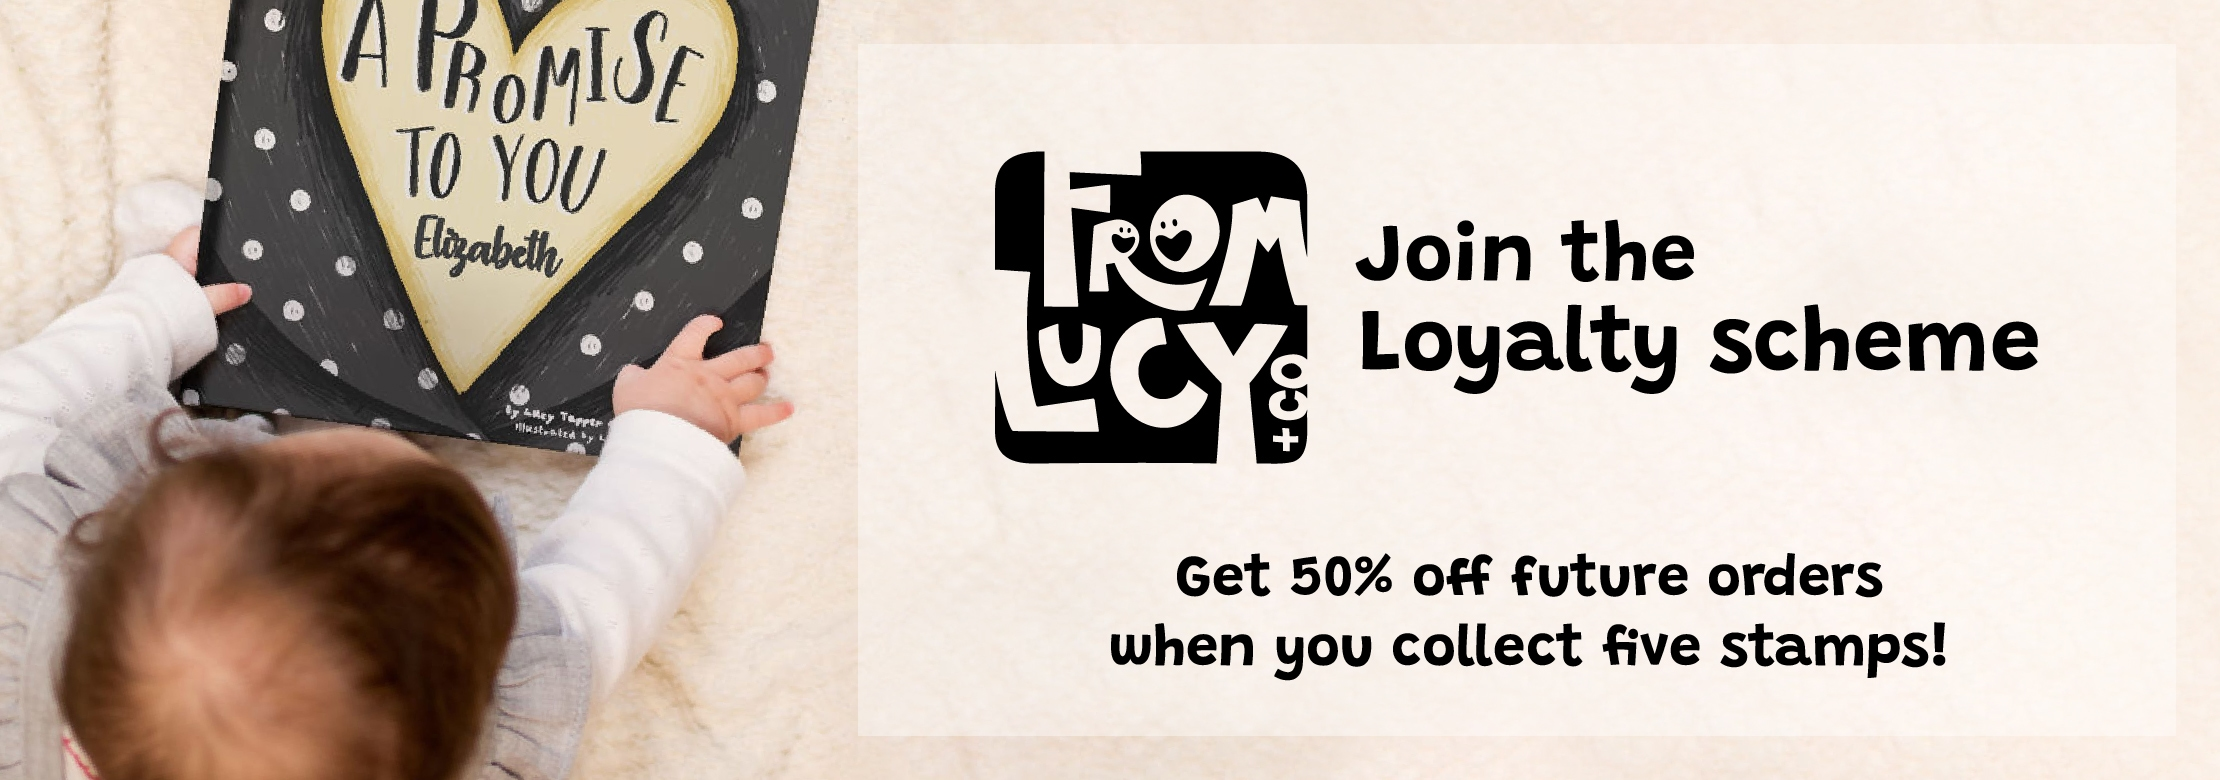 From Lucy Loyalty Scheme